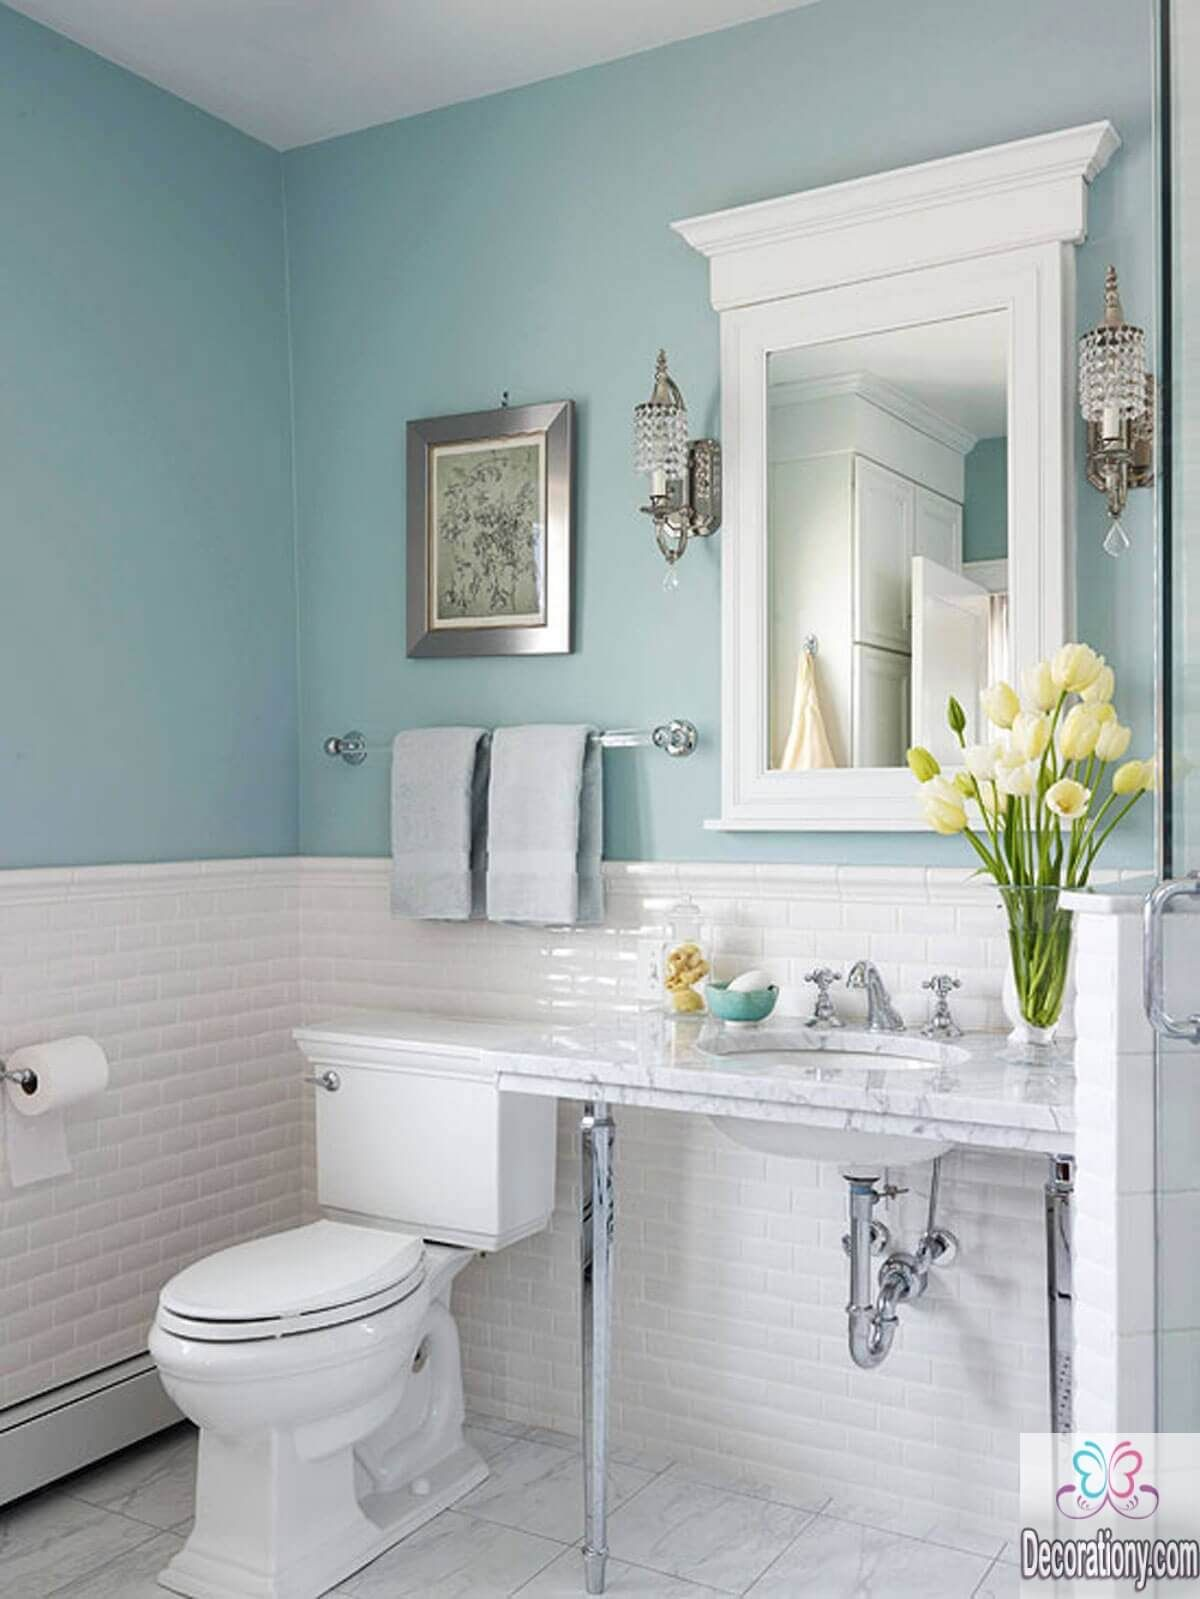 15+ Small White Beautiful Bathroom Remodel Ideas | Pinterest | Small ...